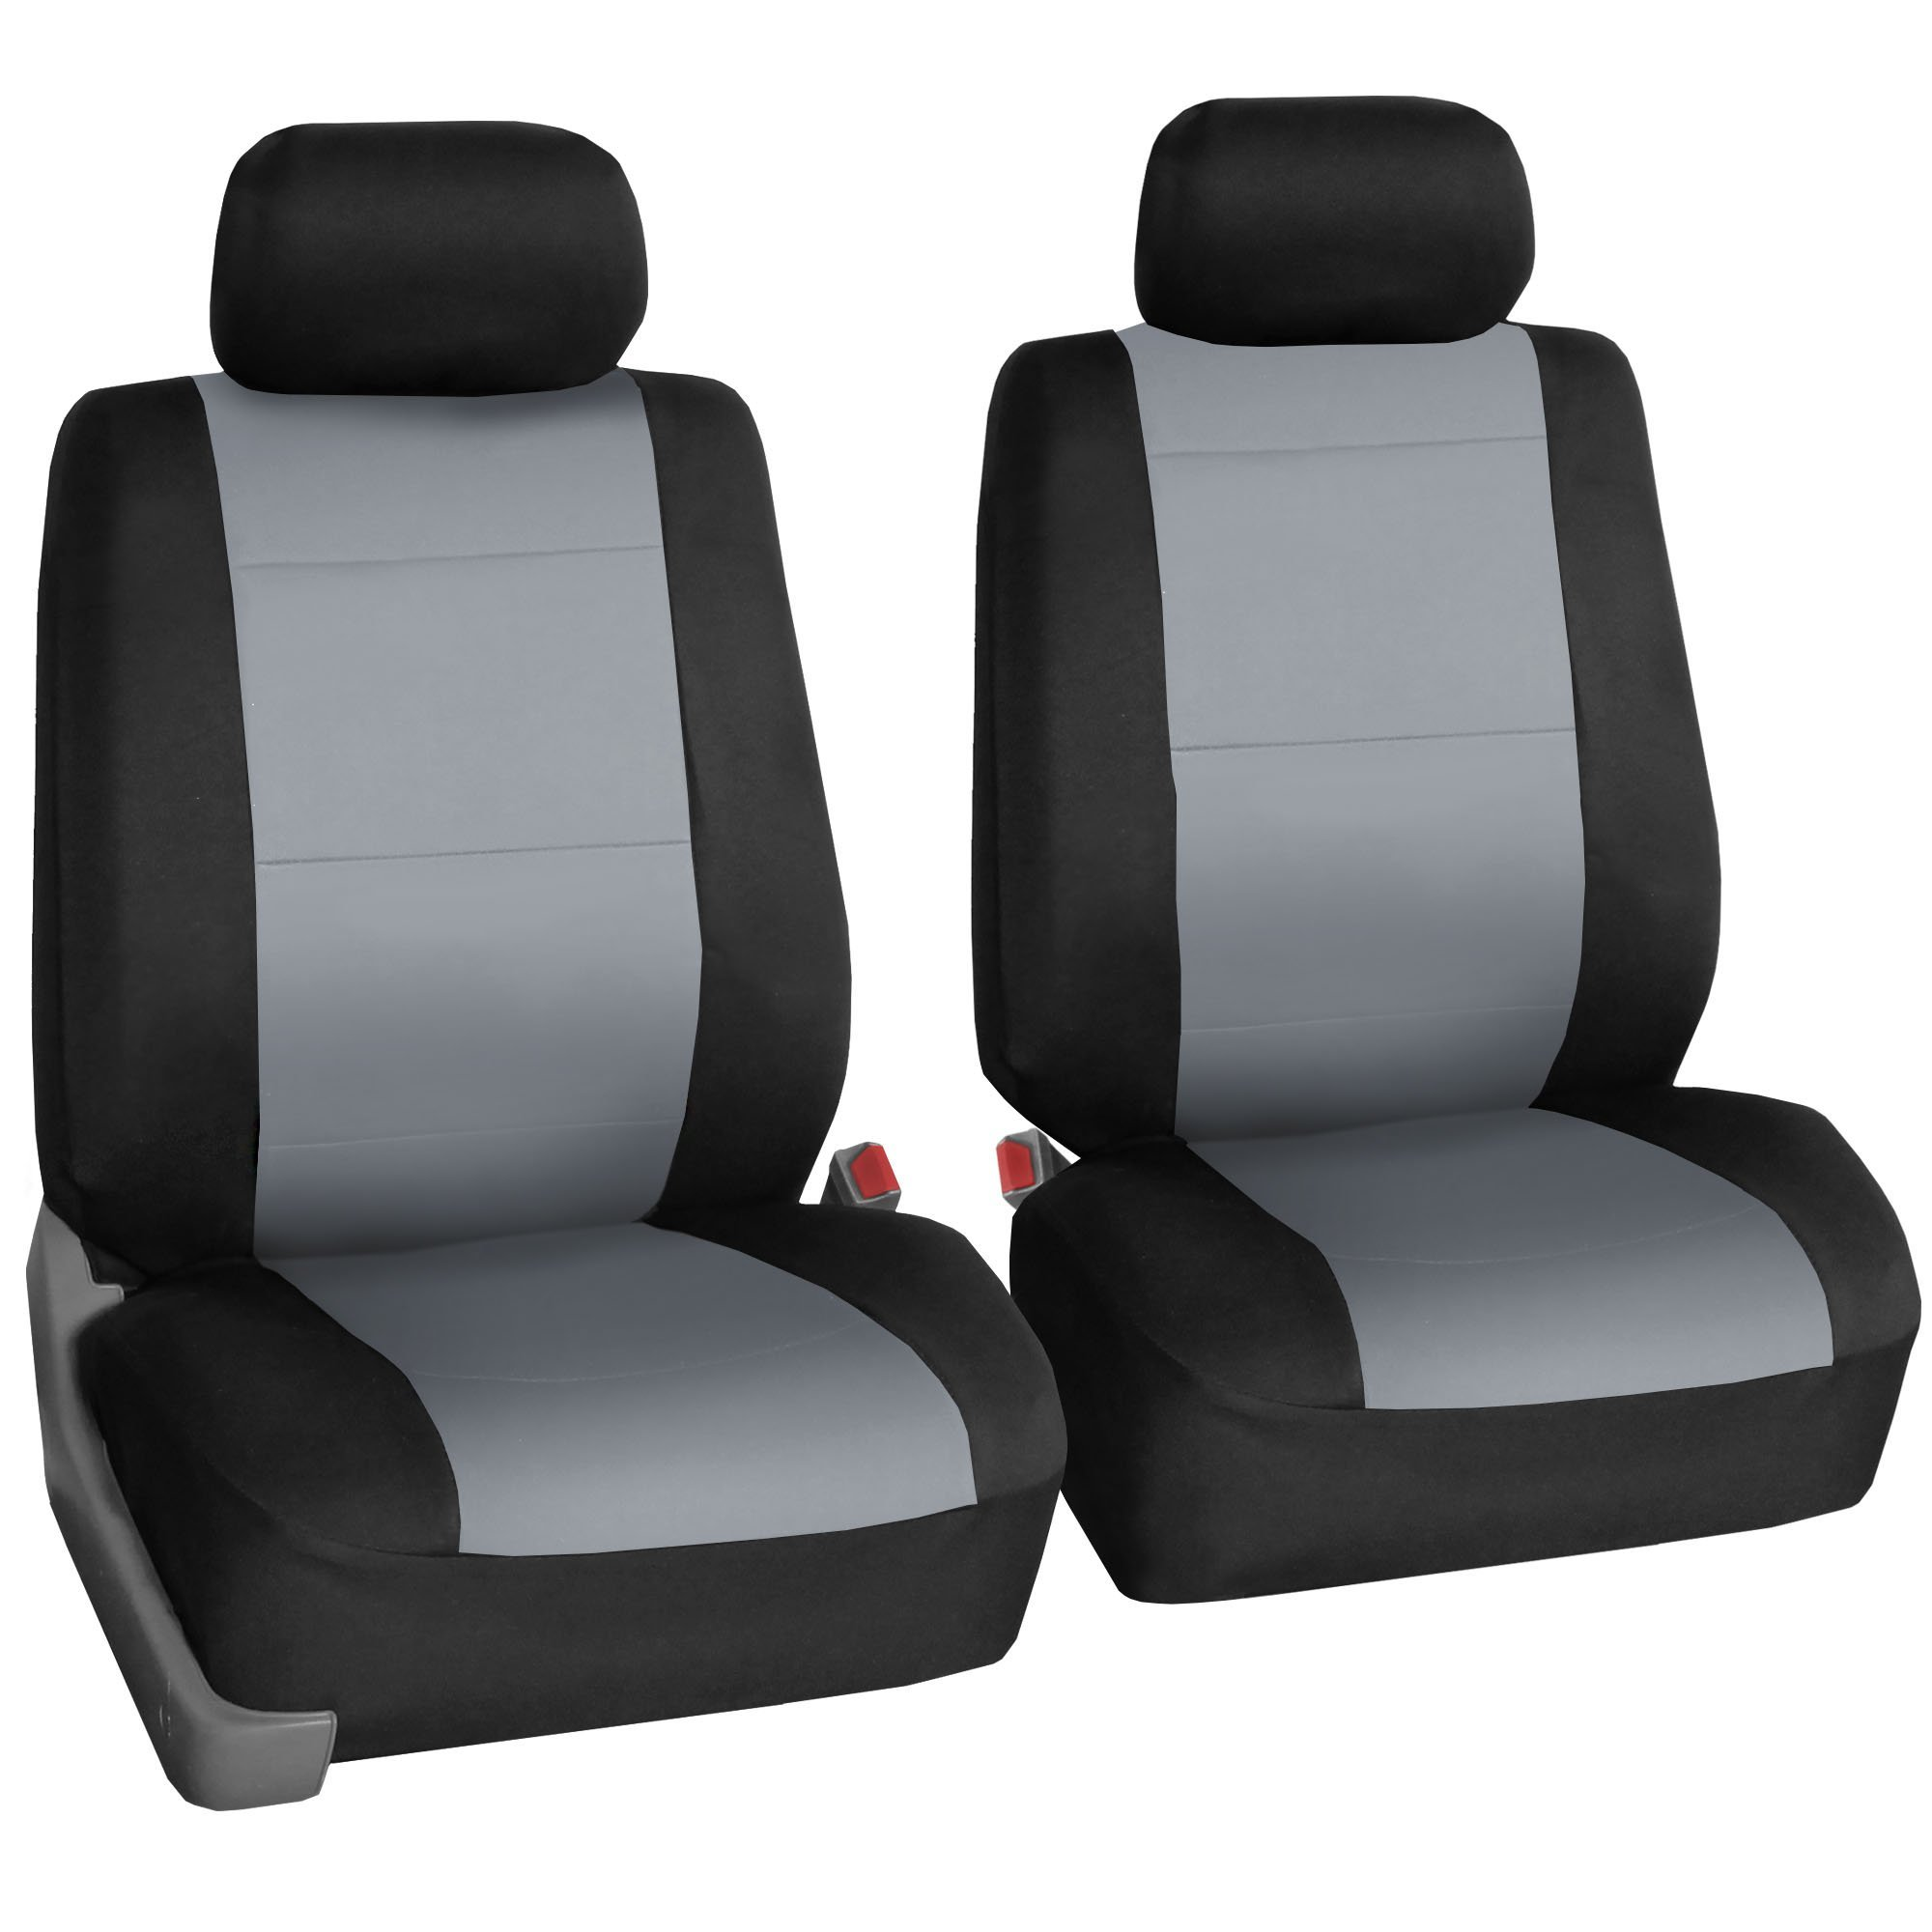 galleon fh group fh fb083102 neoprene waterproof car seat covers pair set buckets airbag. Black Bedroom Furniture Sets. Home Design Ideas